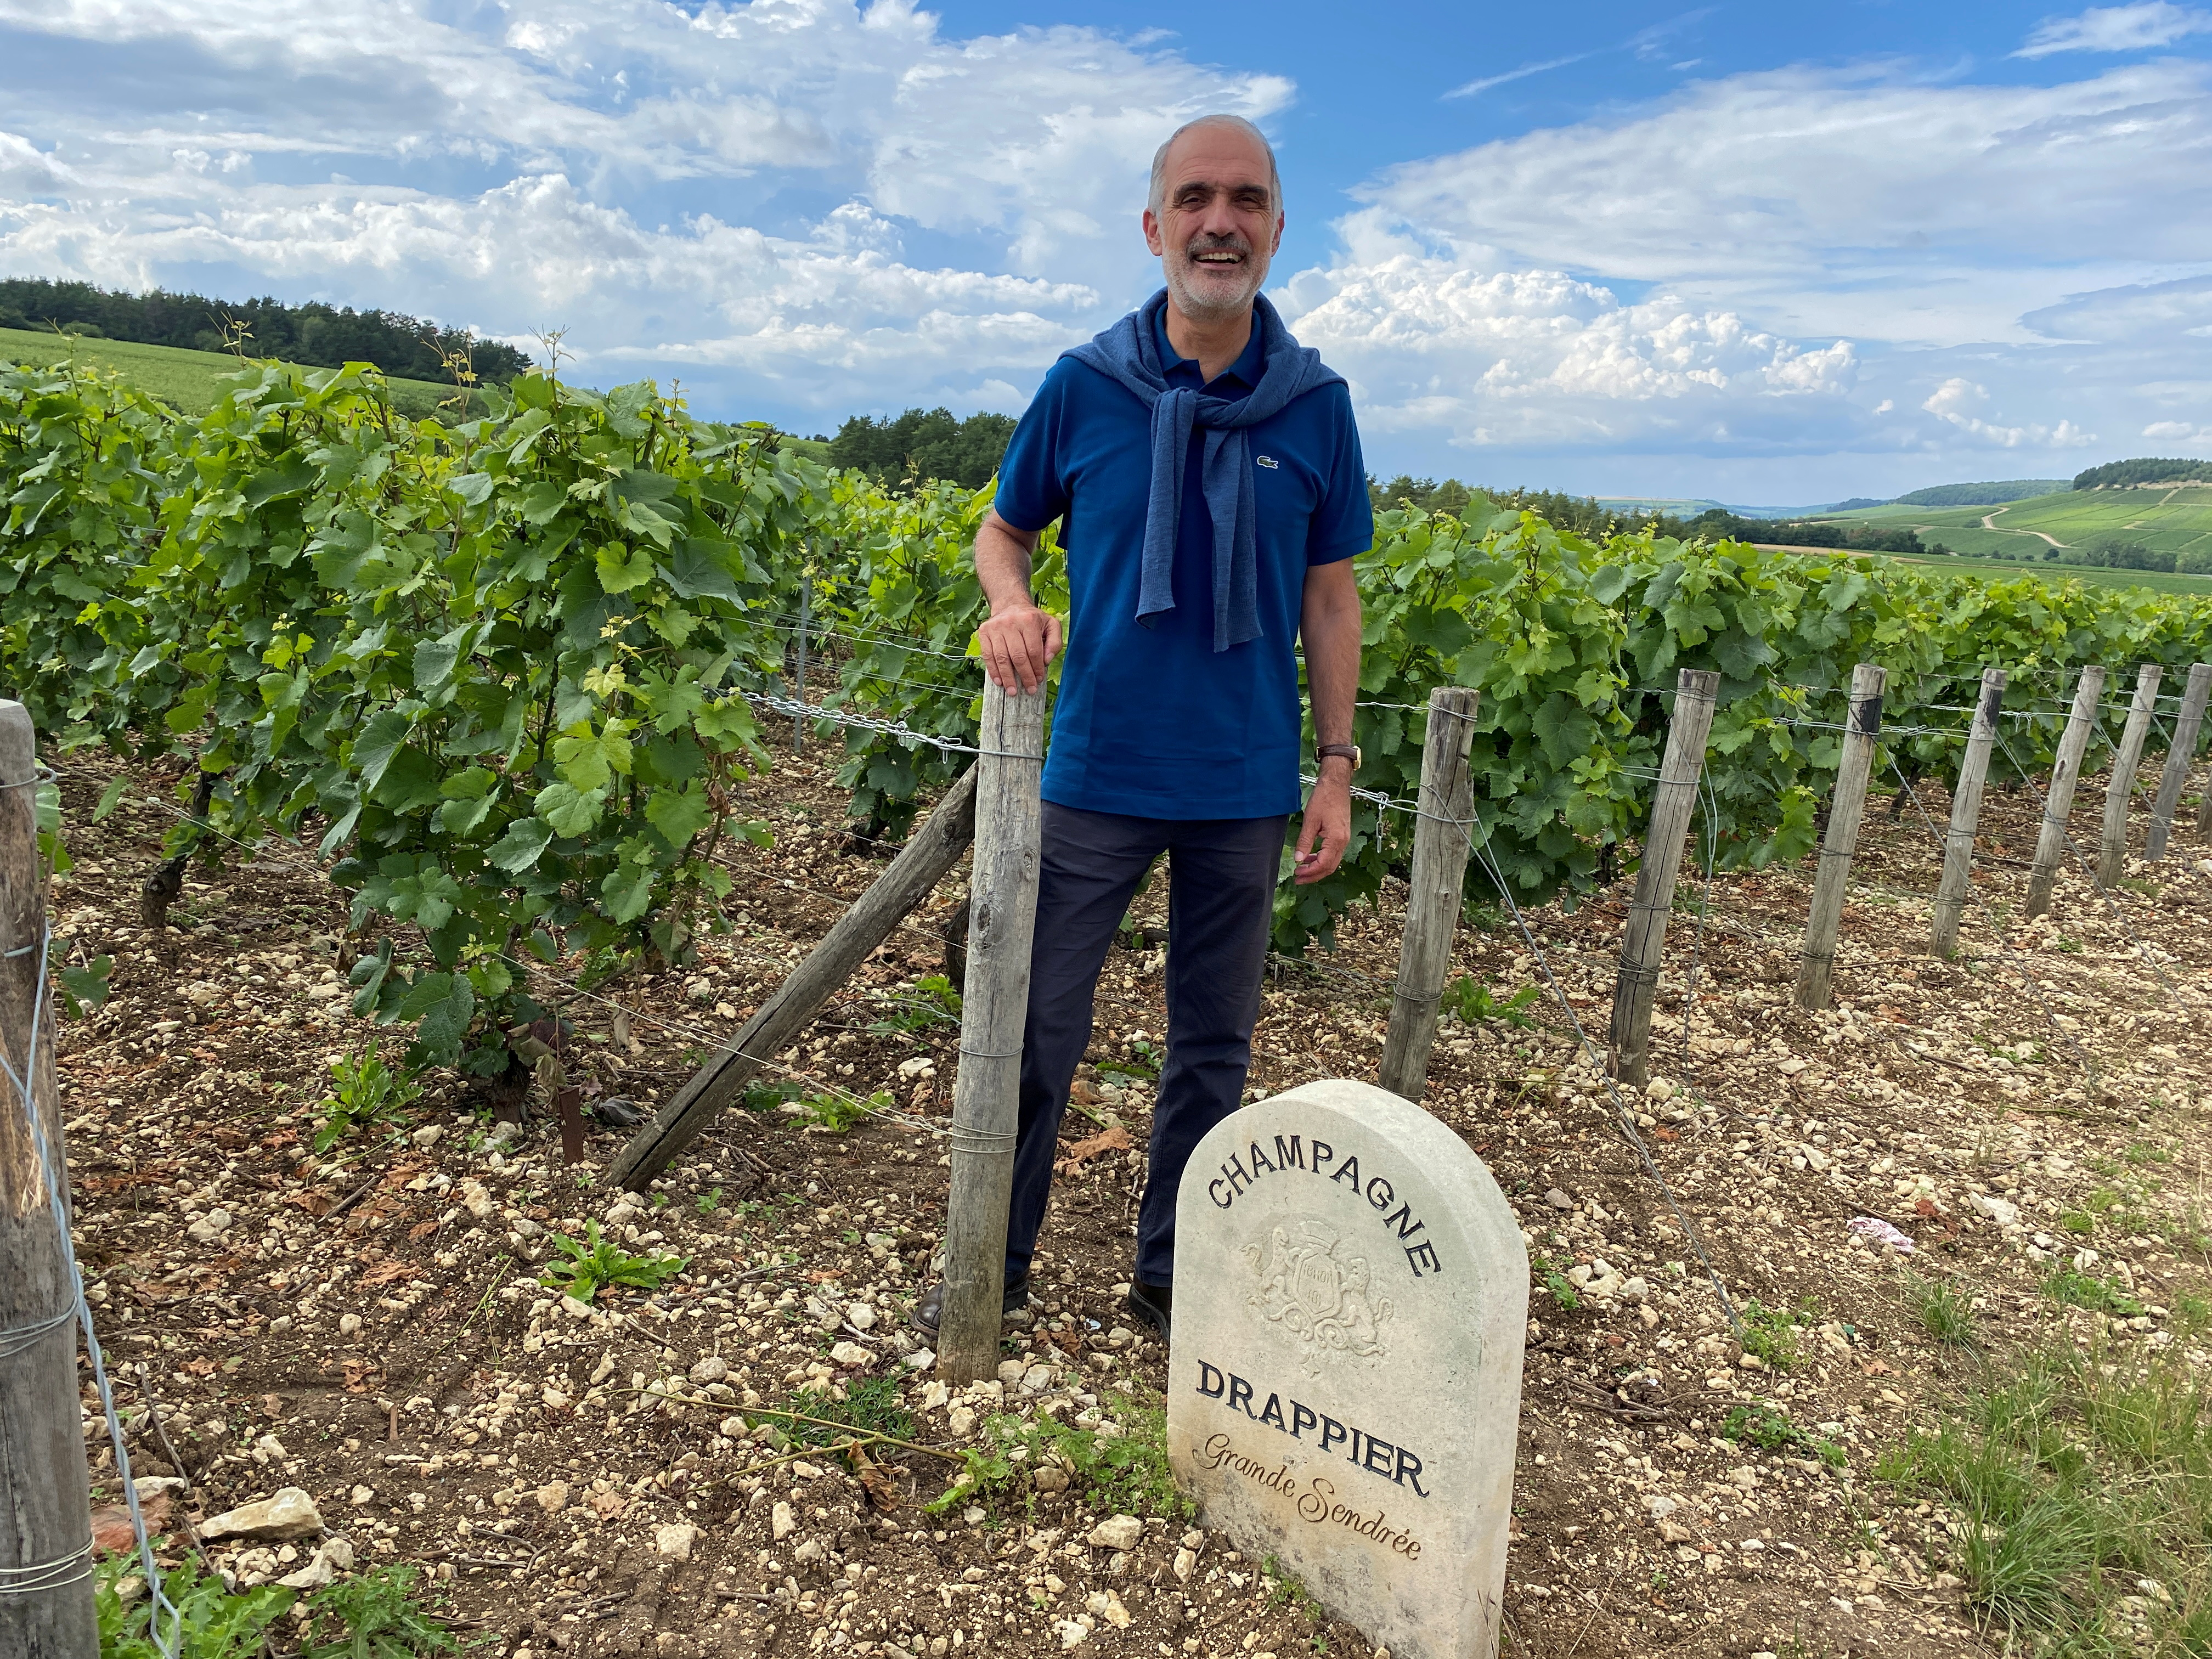 French champagne producer Michel Drappier poses in his vineyard in Urville, France, July 8, 2021, after Russia adopted new law requiring French producers to label their product as